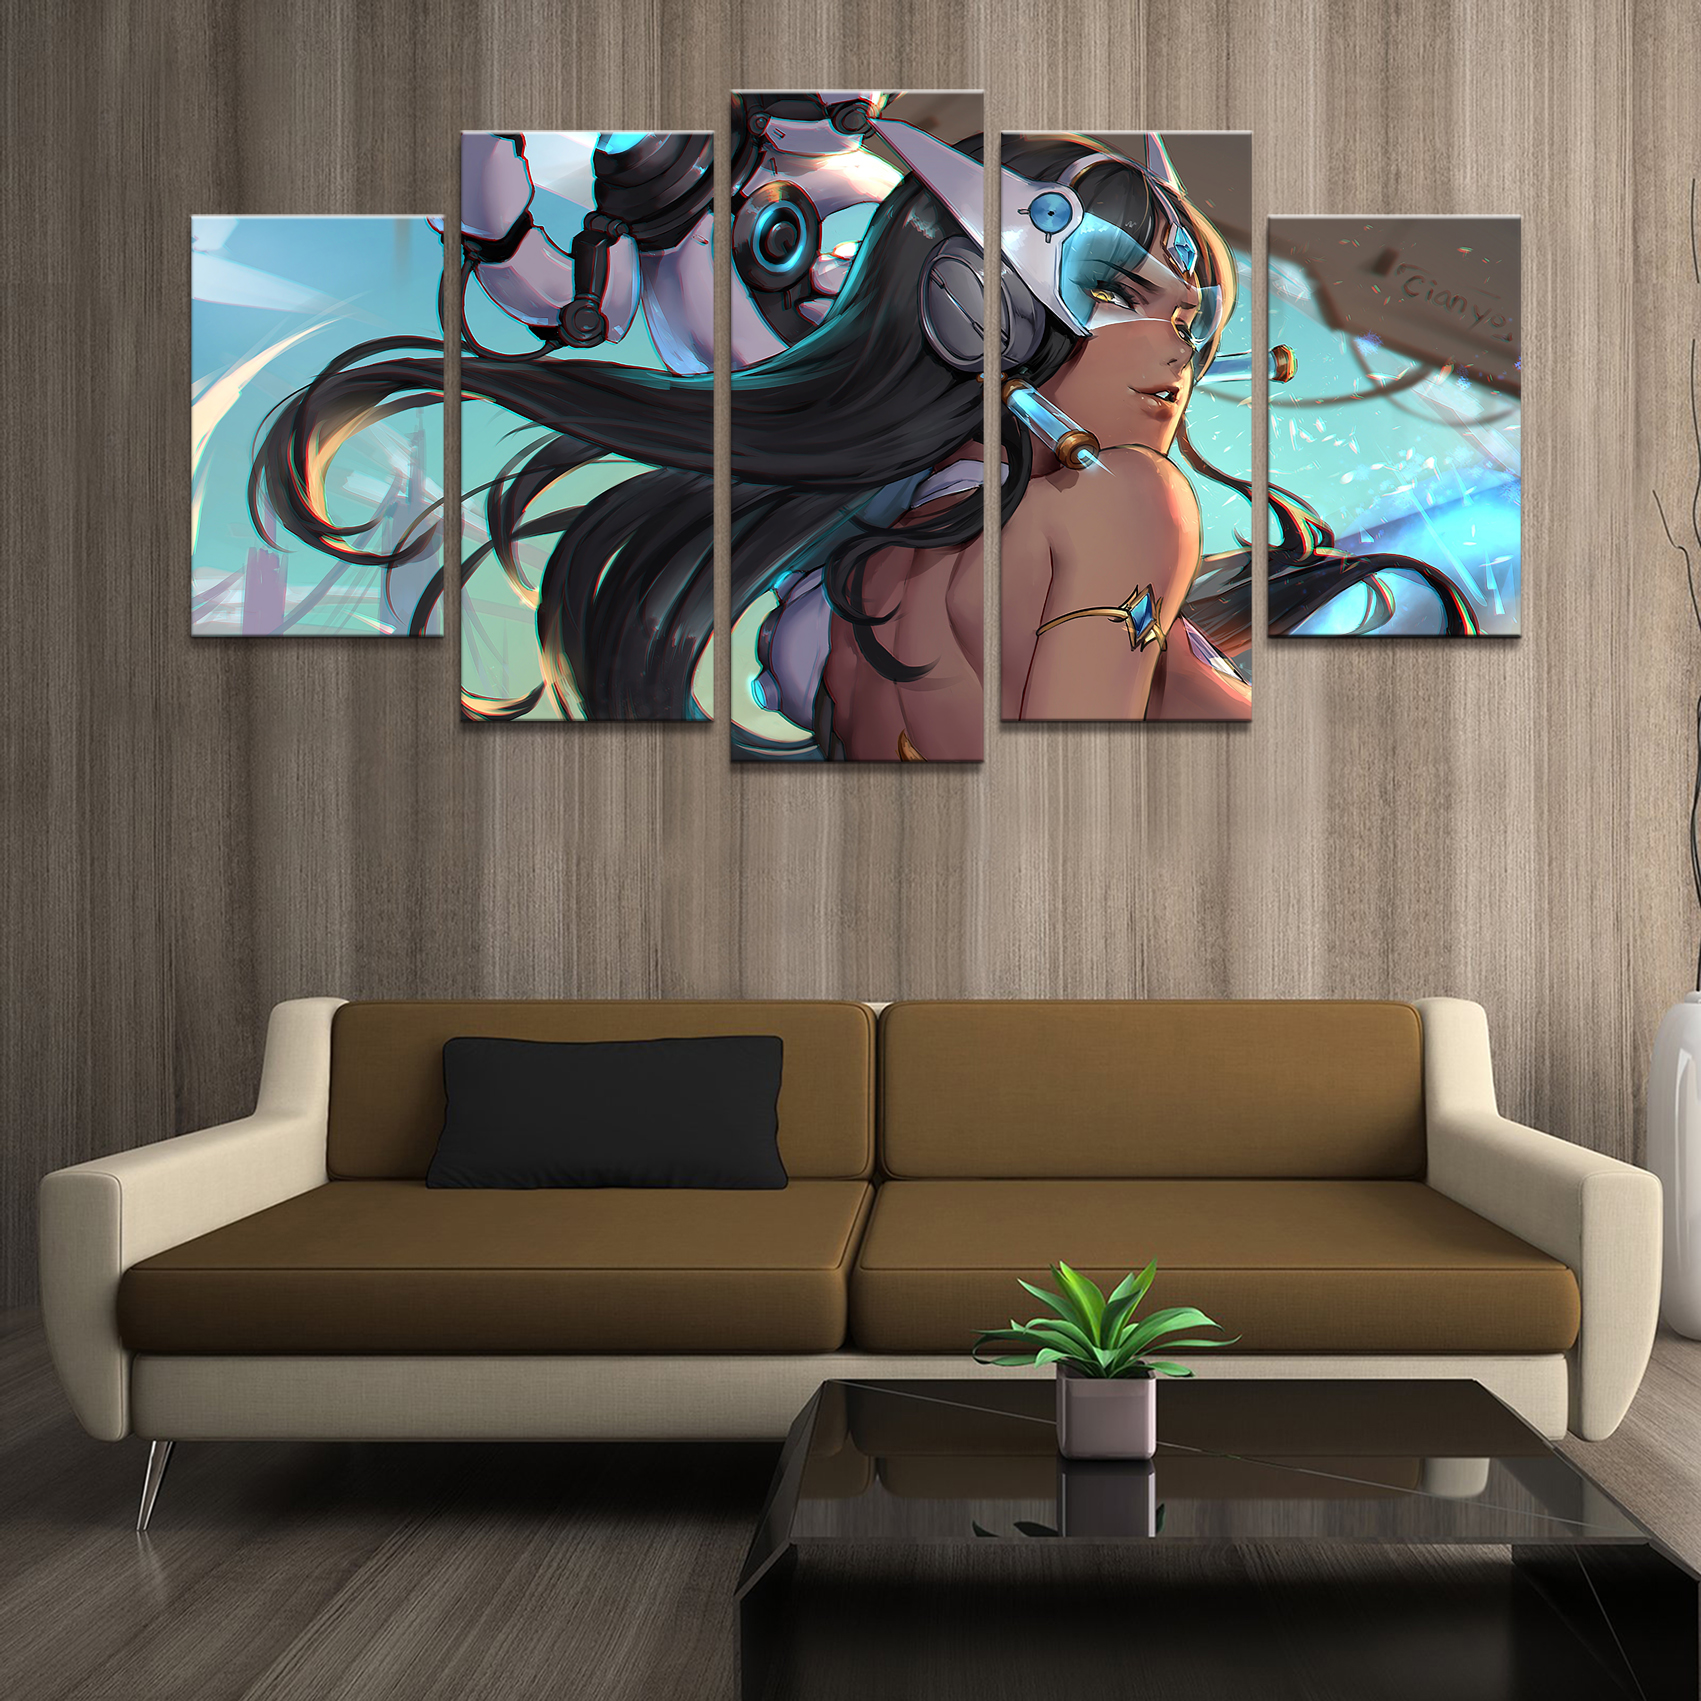 Home Decor Poster HD Art Pictures Prints Canvas 5 Piece Modular Symmetra Overwatch Game Living Room Decorative Painting Framed image